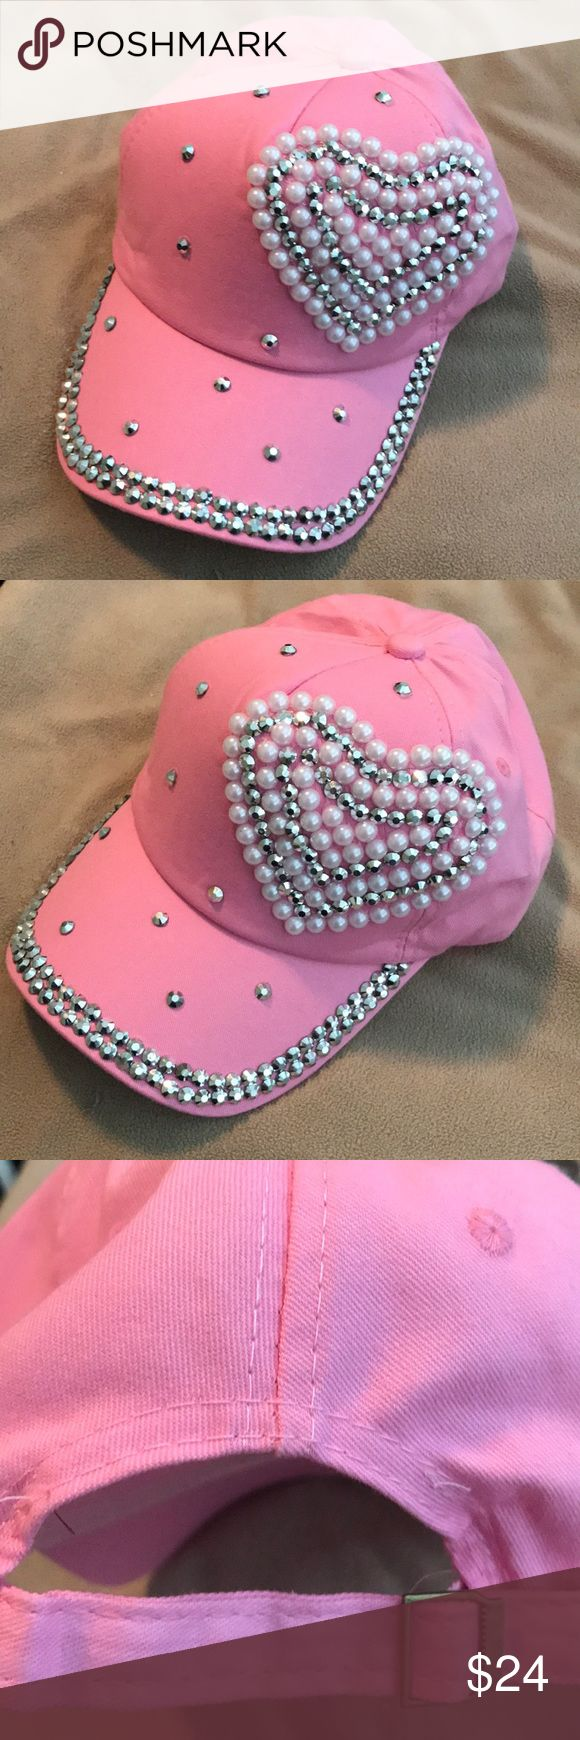 Pink Baseball Cap Studded Pearl & Crystal Heart Pink Twill baseball cap with crystal studs in two rows on the peak and a big crystal and pearl studded heart front left. Brand new! Accessories Hats